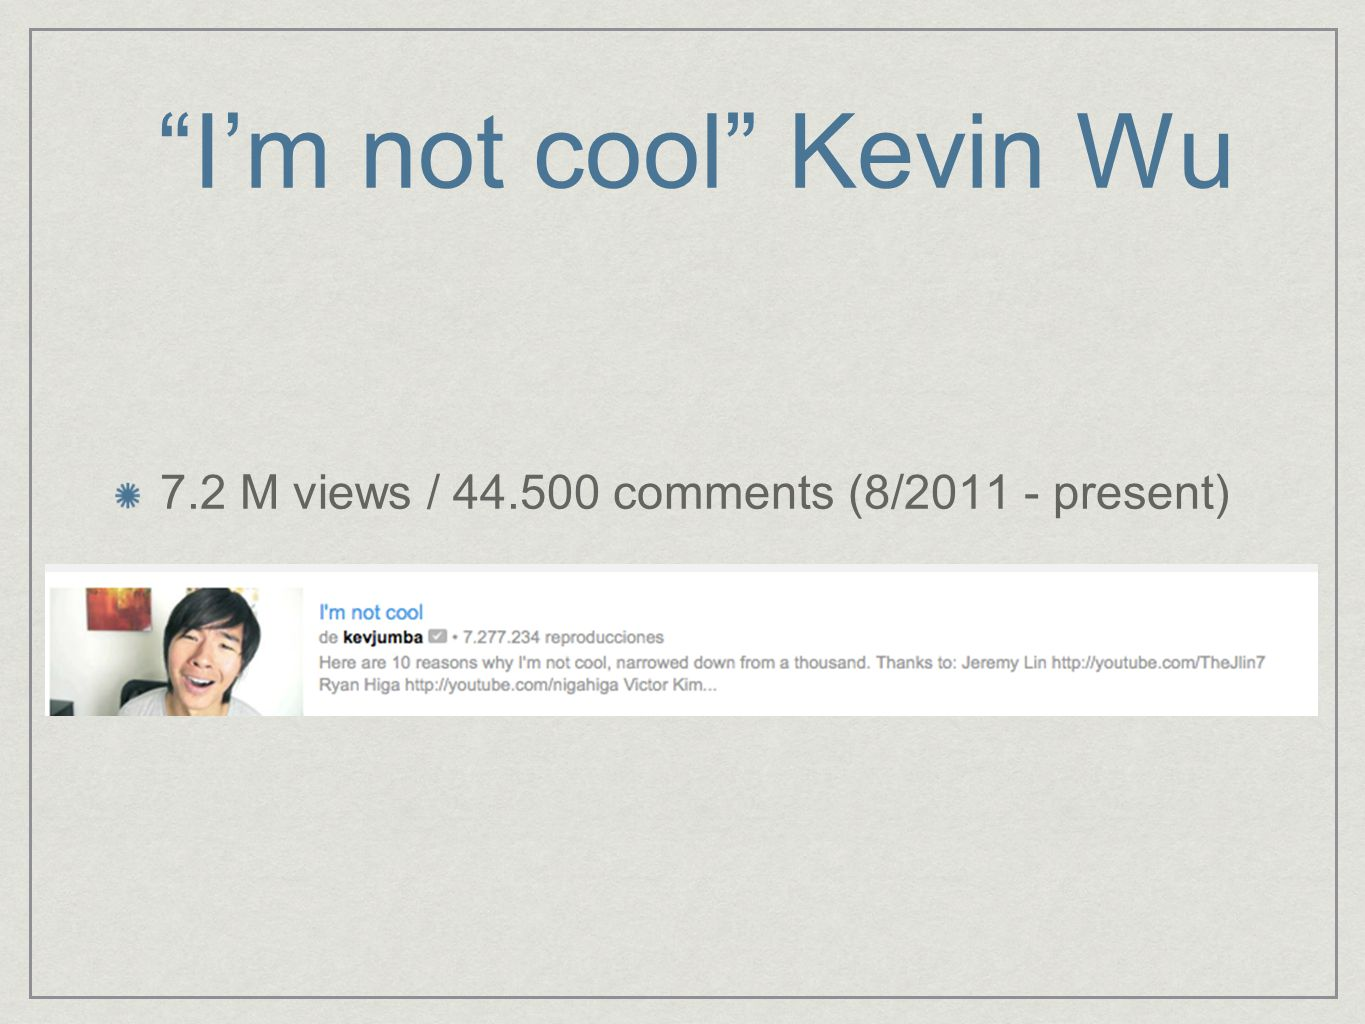 Im not cool Kevin Wu 7.2 M views / 44.500 comments (8/2011 - present)